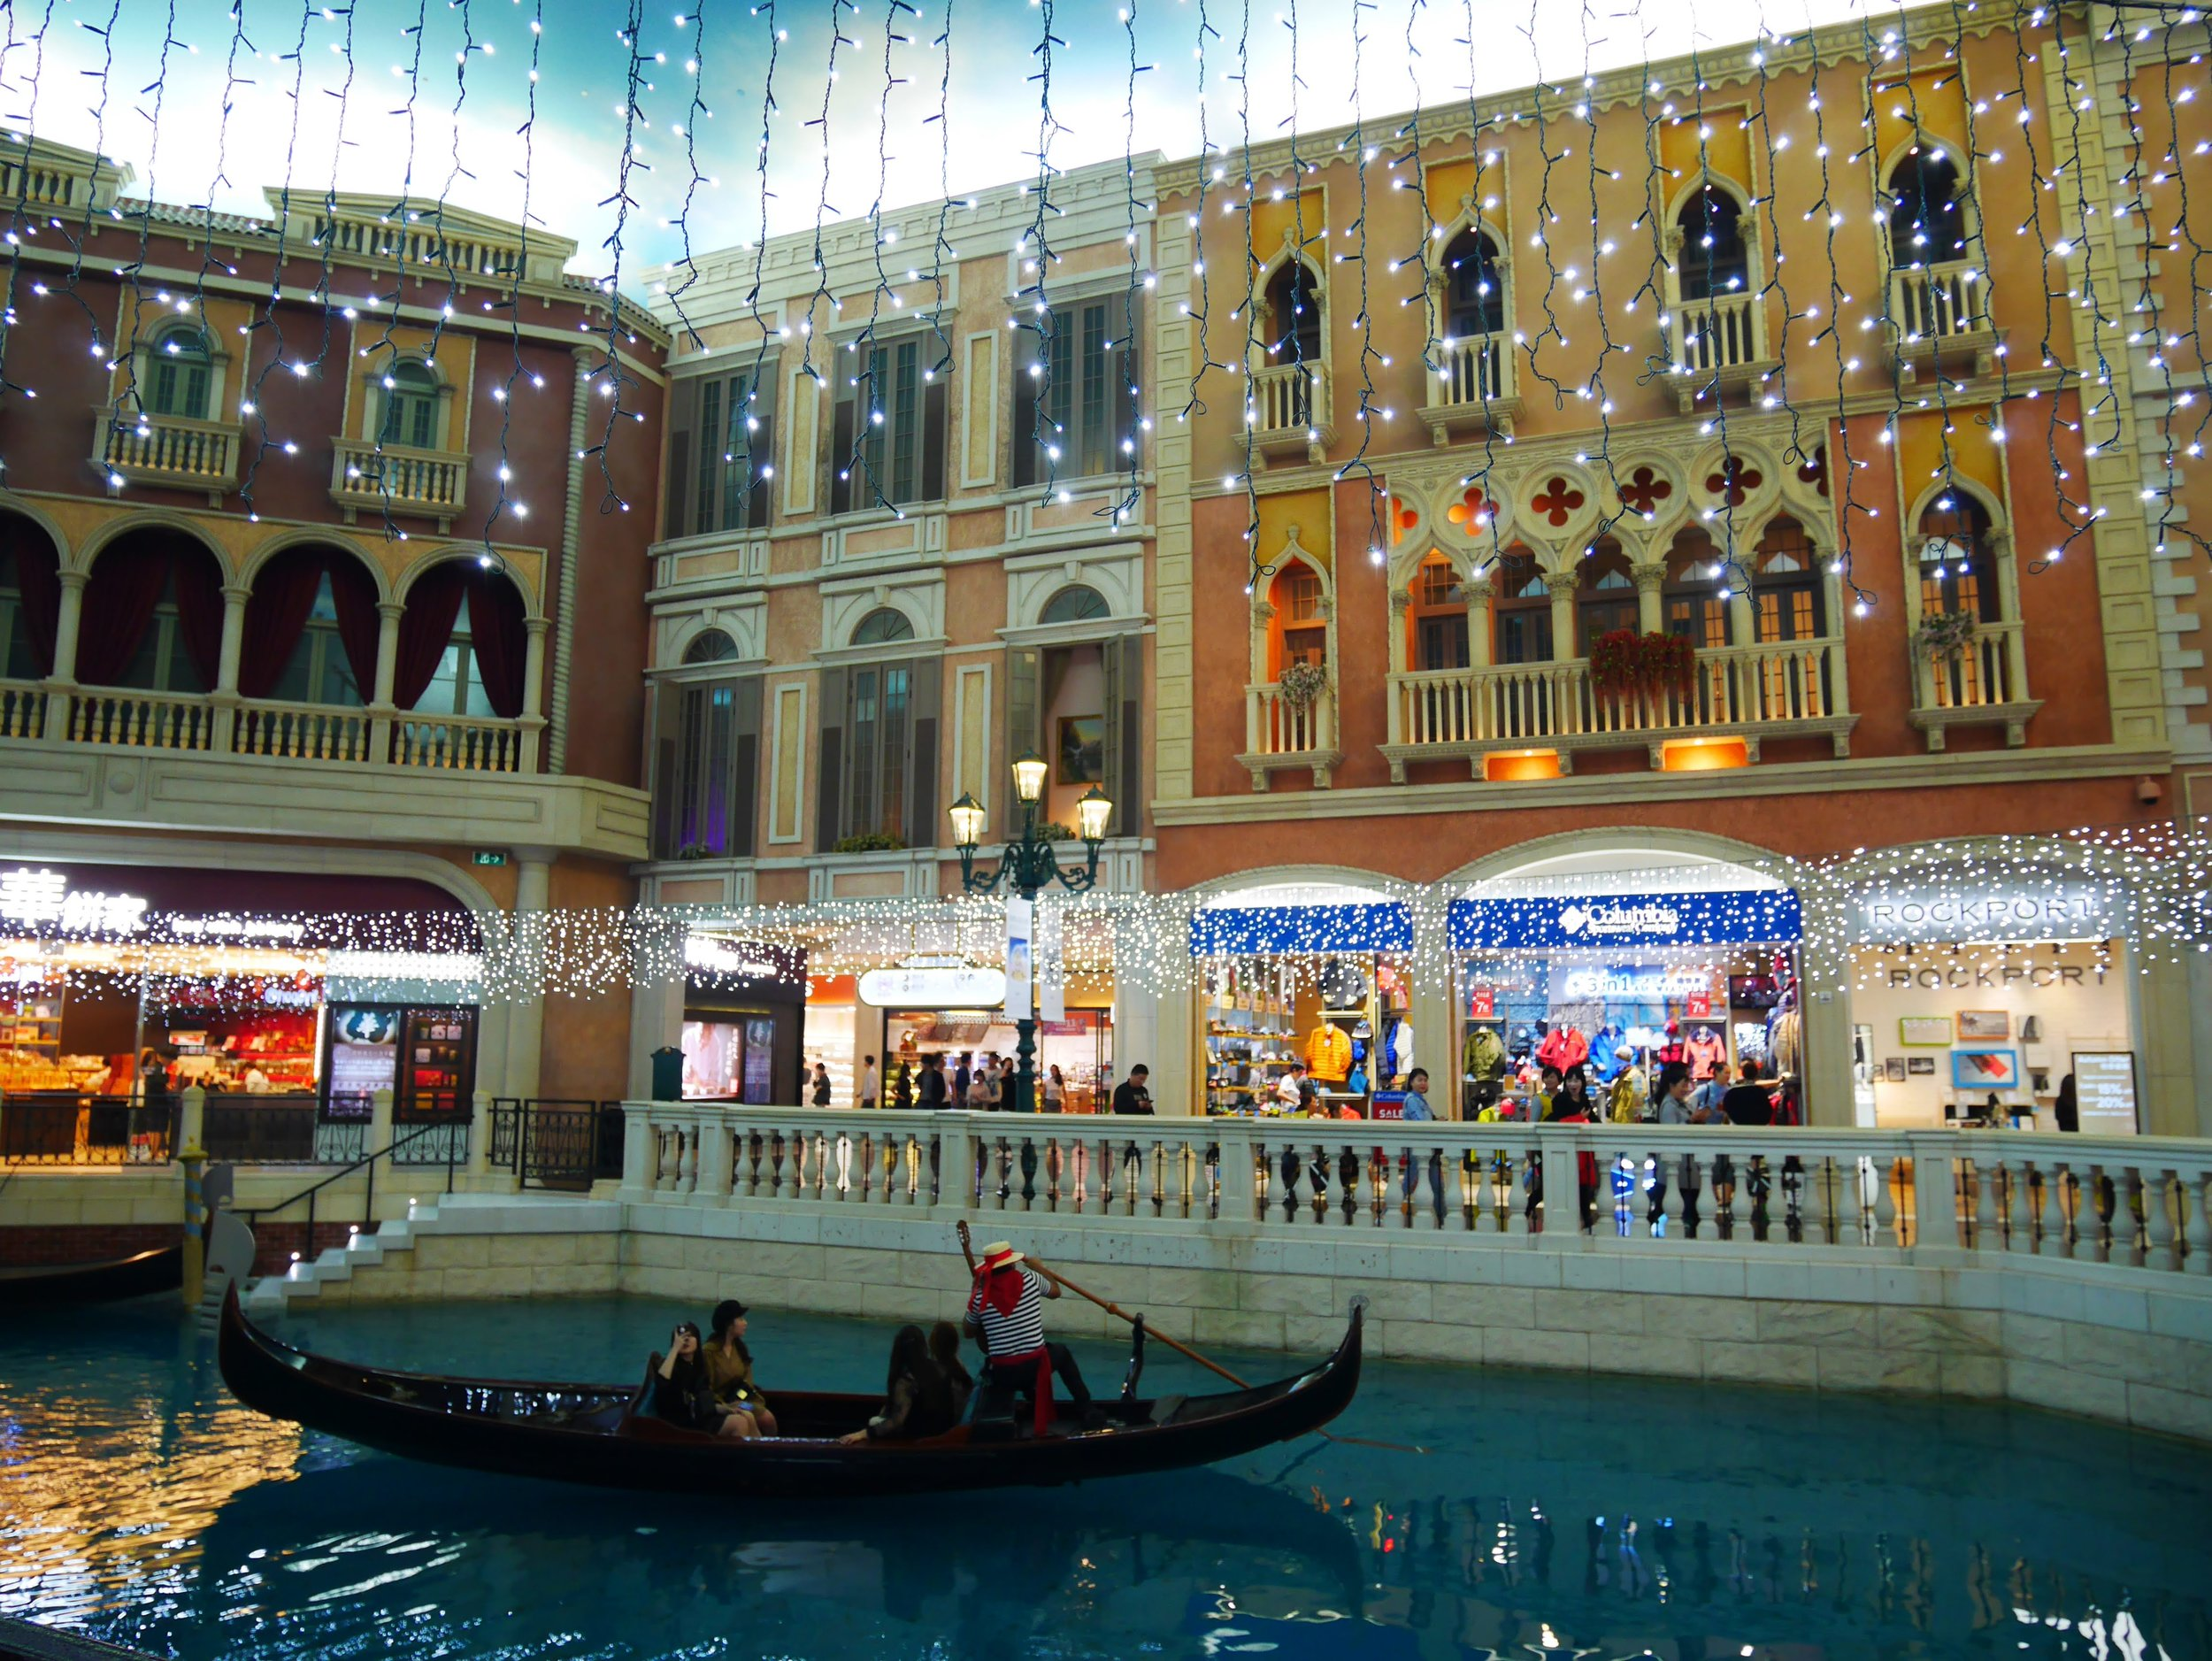 gondolas are available to hire for rides at the Venetian Macau